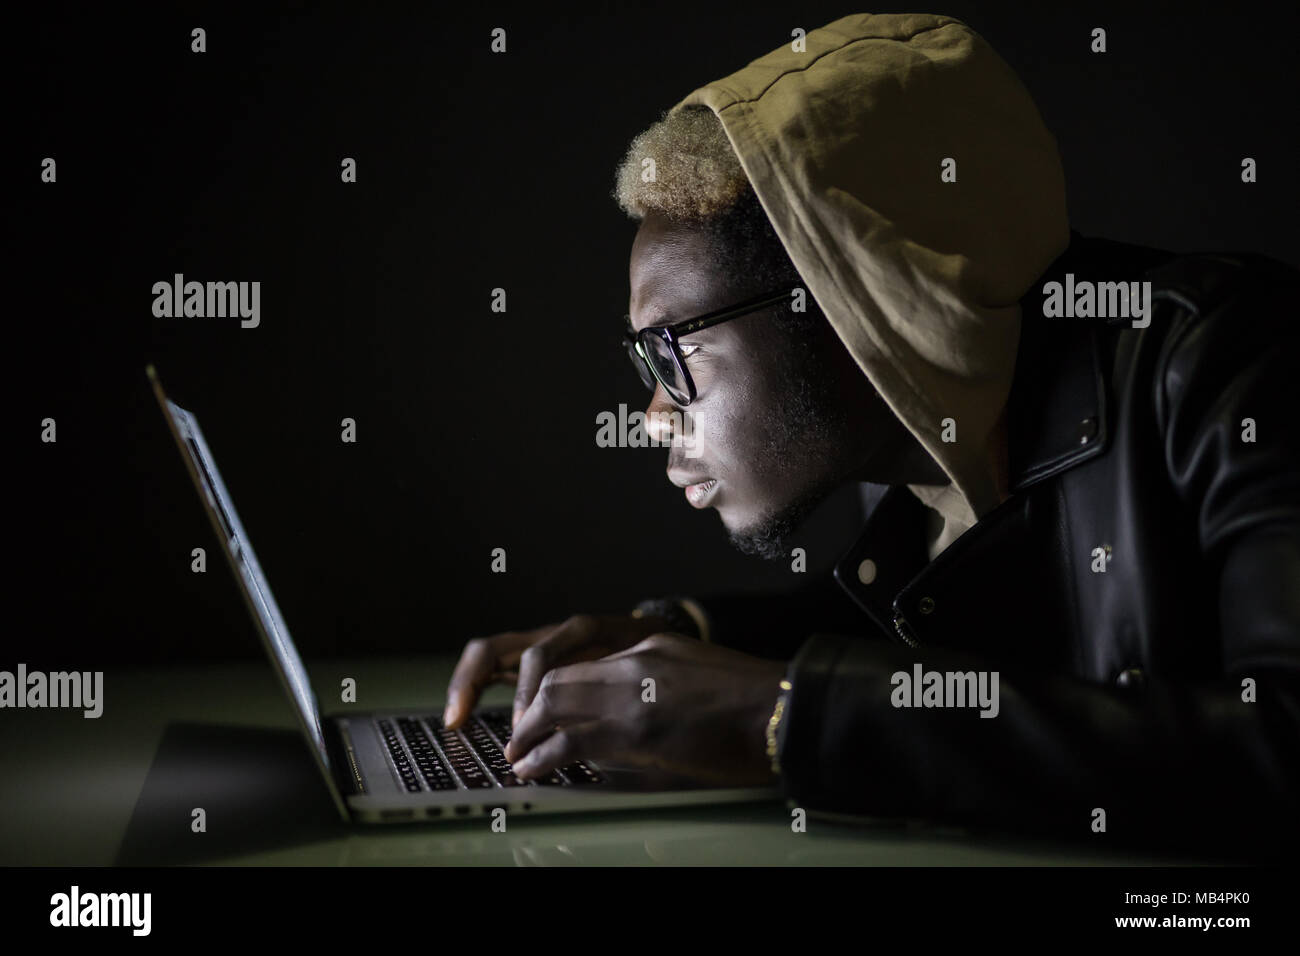 Handsome Afro American man using a laptop browse in internet till late - Stock Image